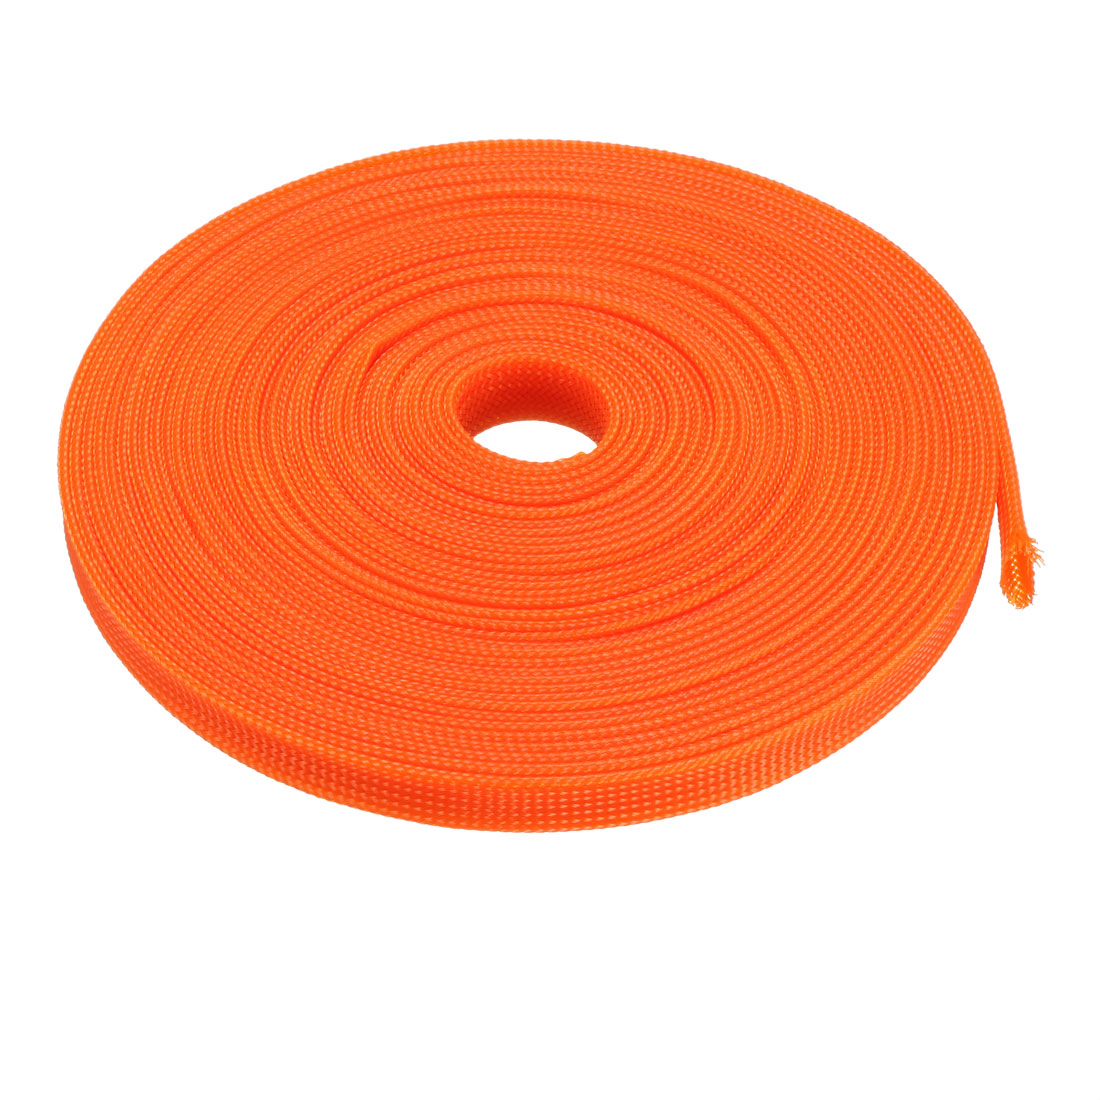 12mm Dia Tight Braided PET Expandable Sleeving Cable Wrap Sheath Orange 32Ft